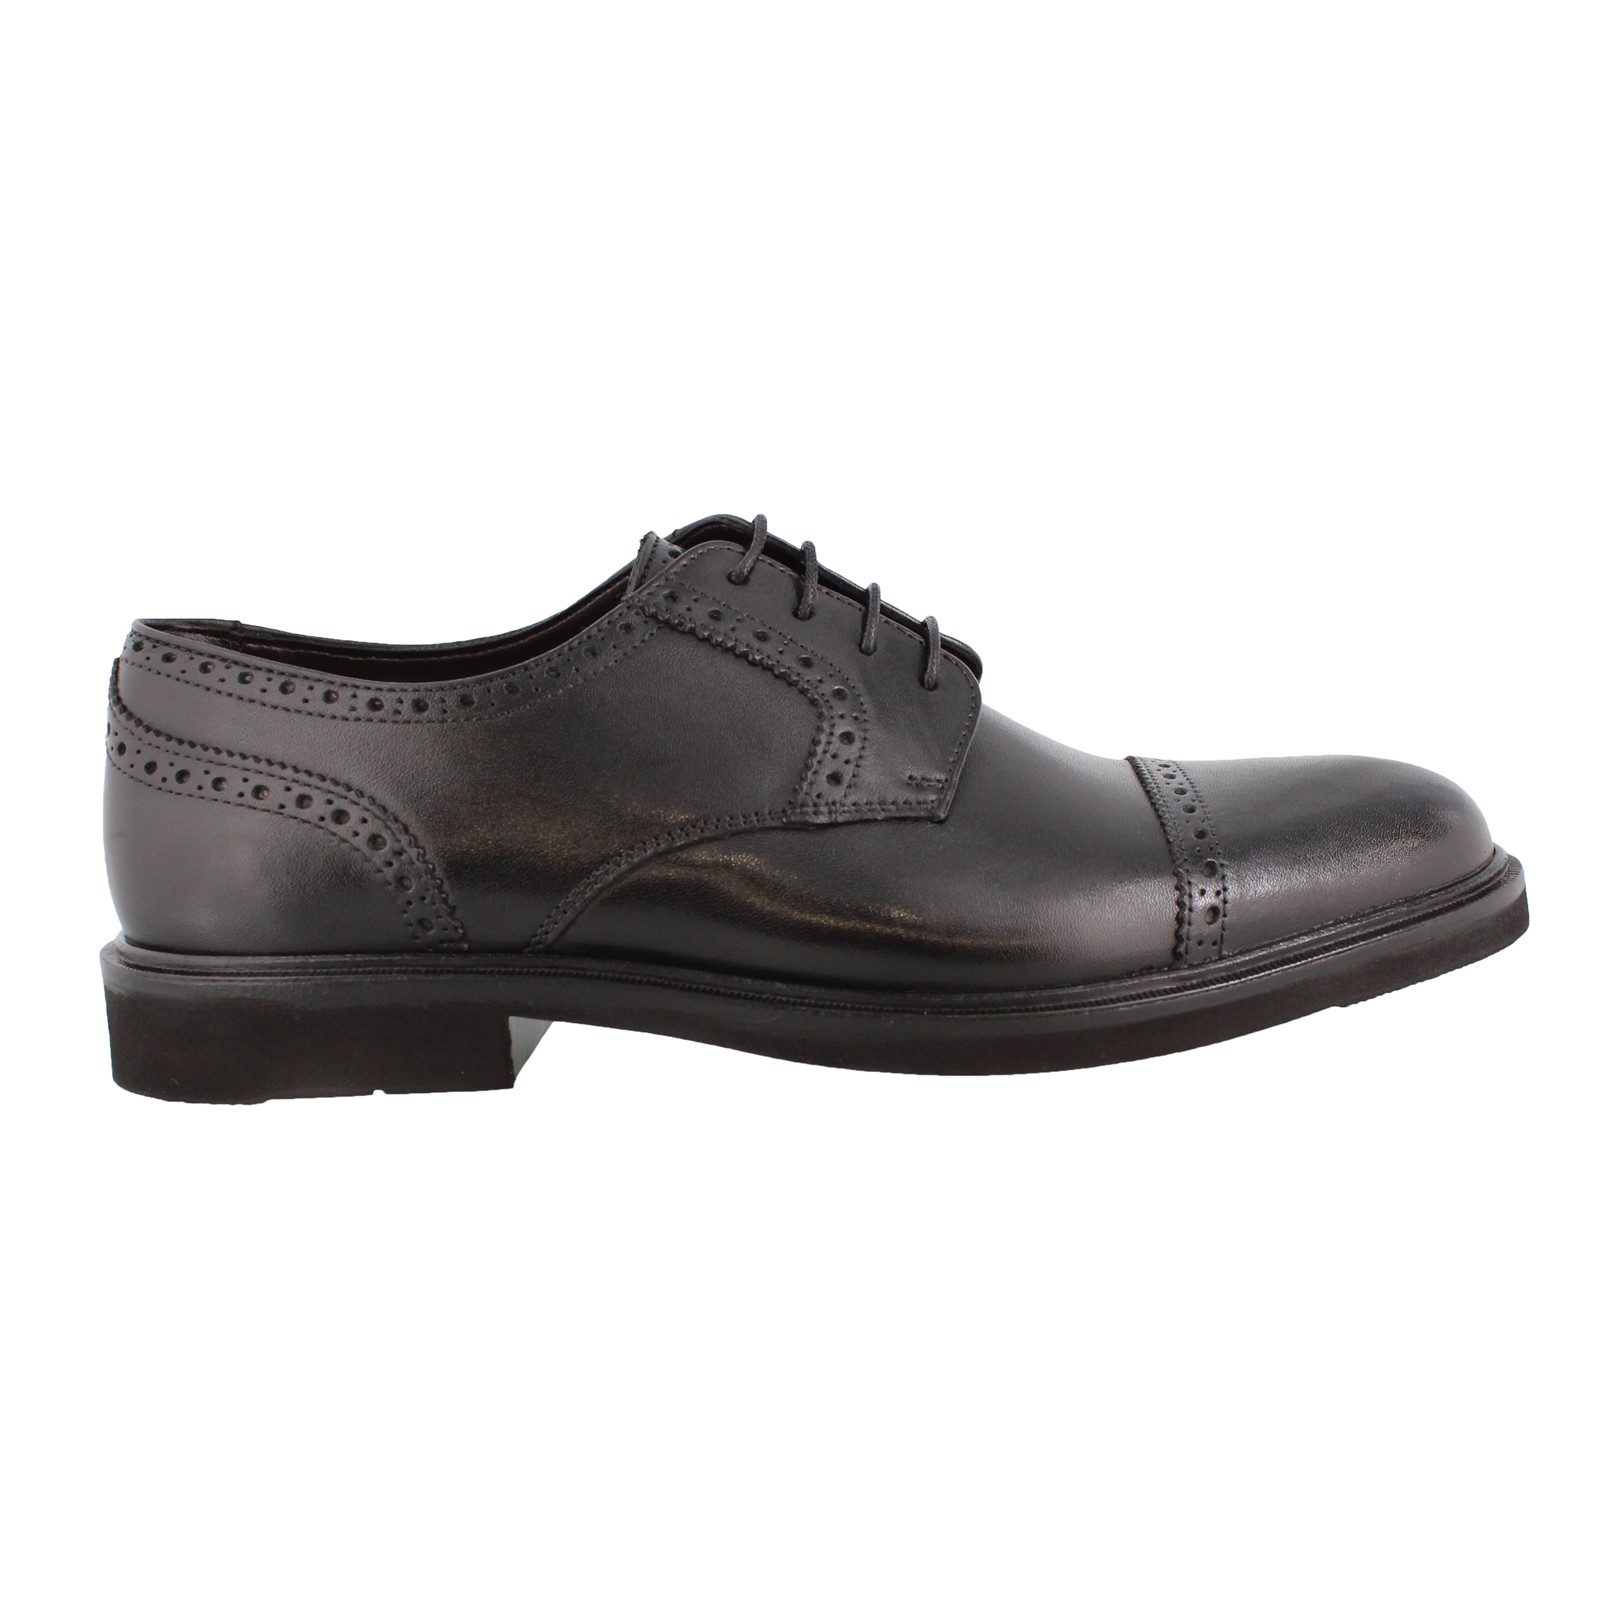 Men's Florsheim, Cleveland Cap Toe Lace up Oxford